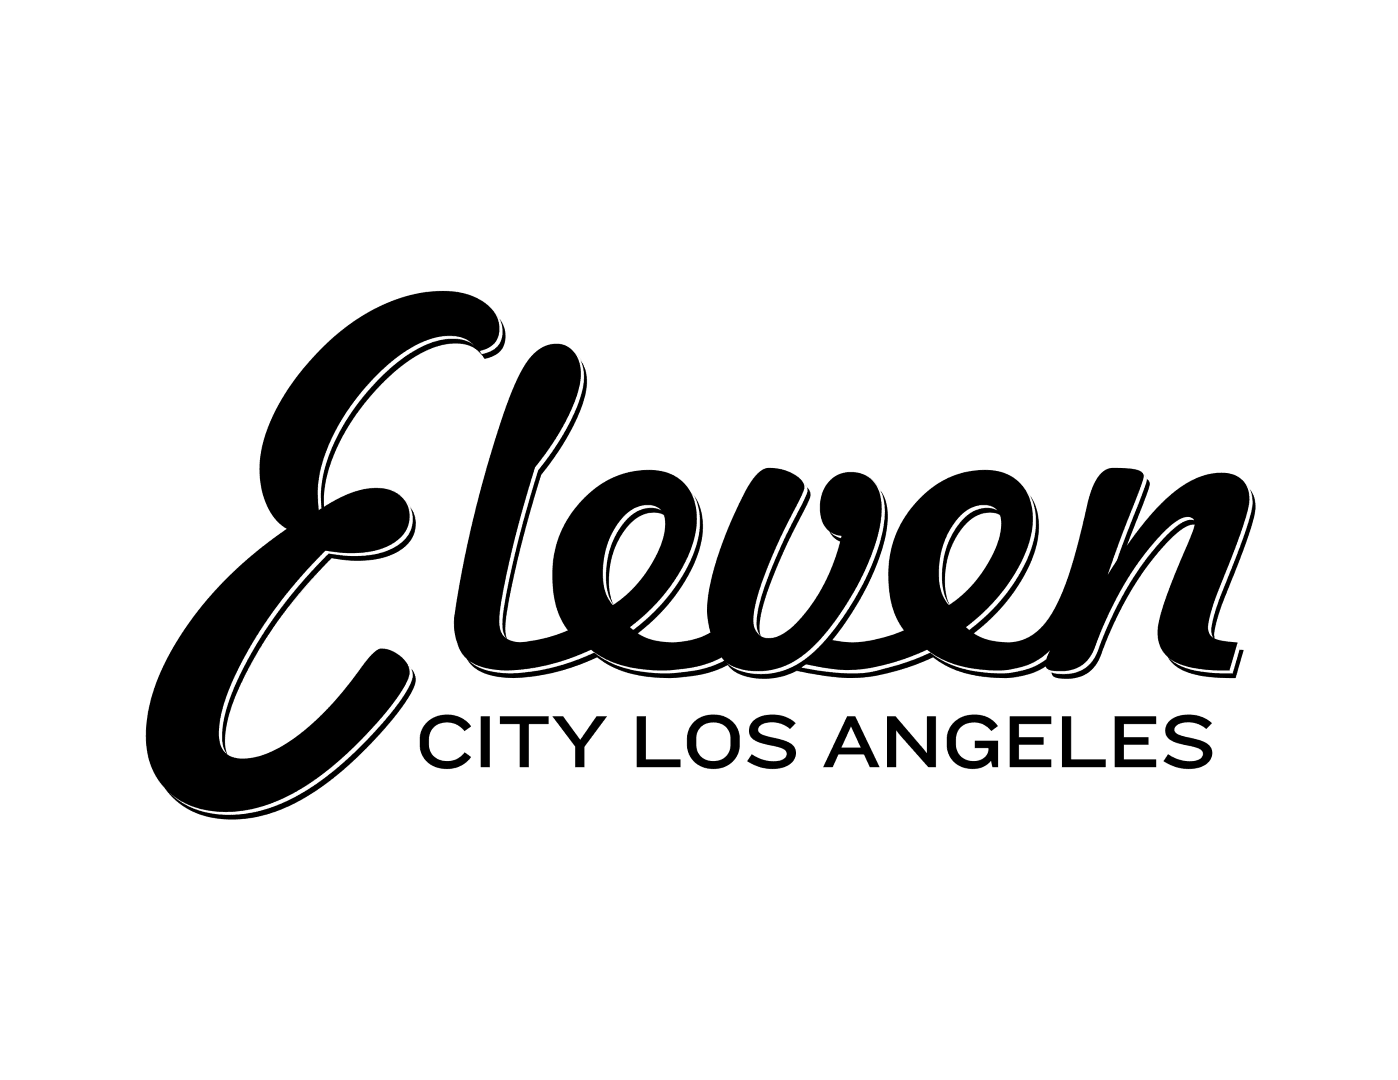 Eleven City Los Angeles logo